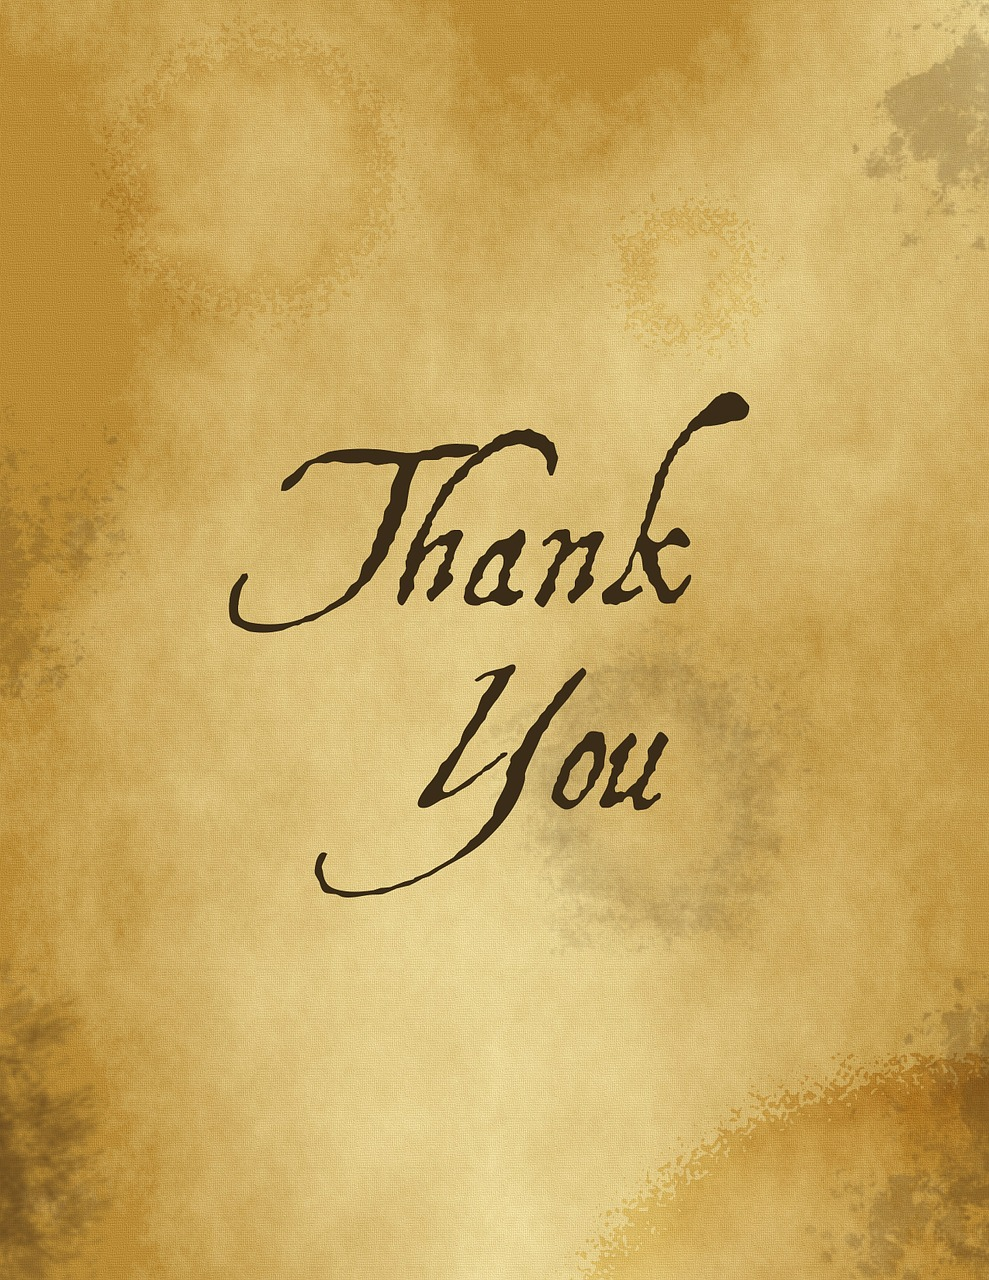 thank-you-391055_1280